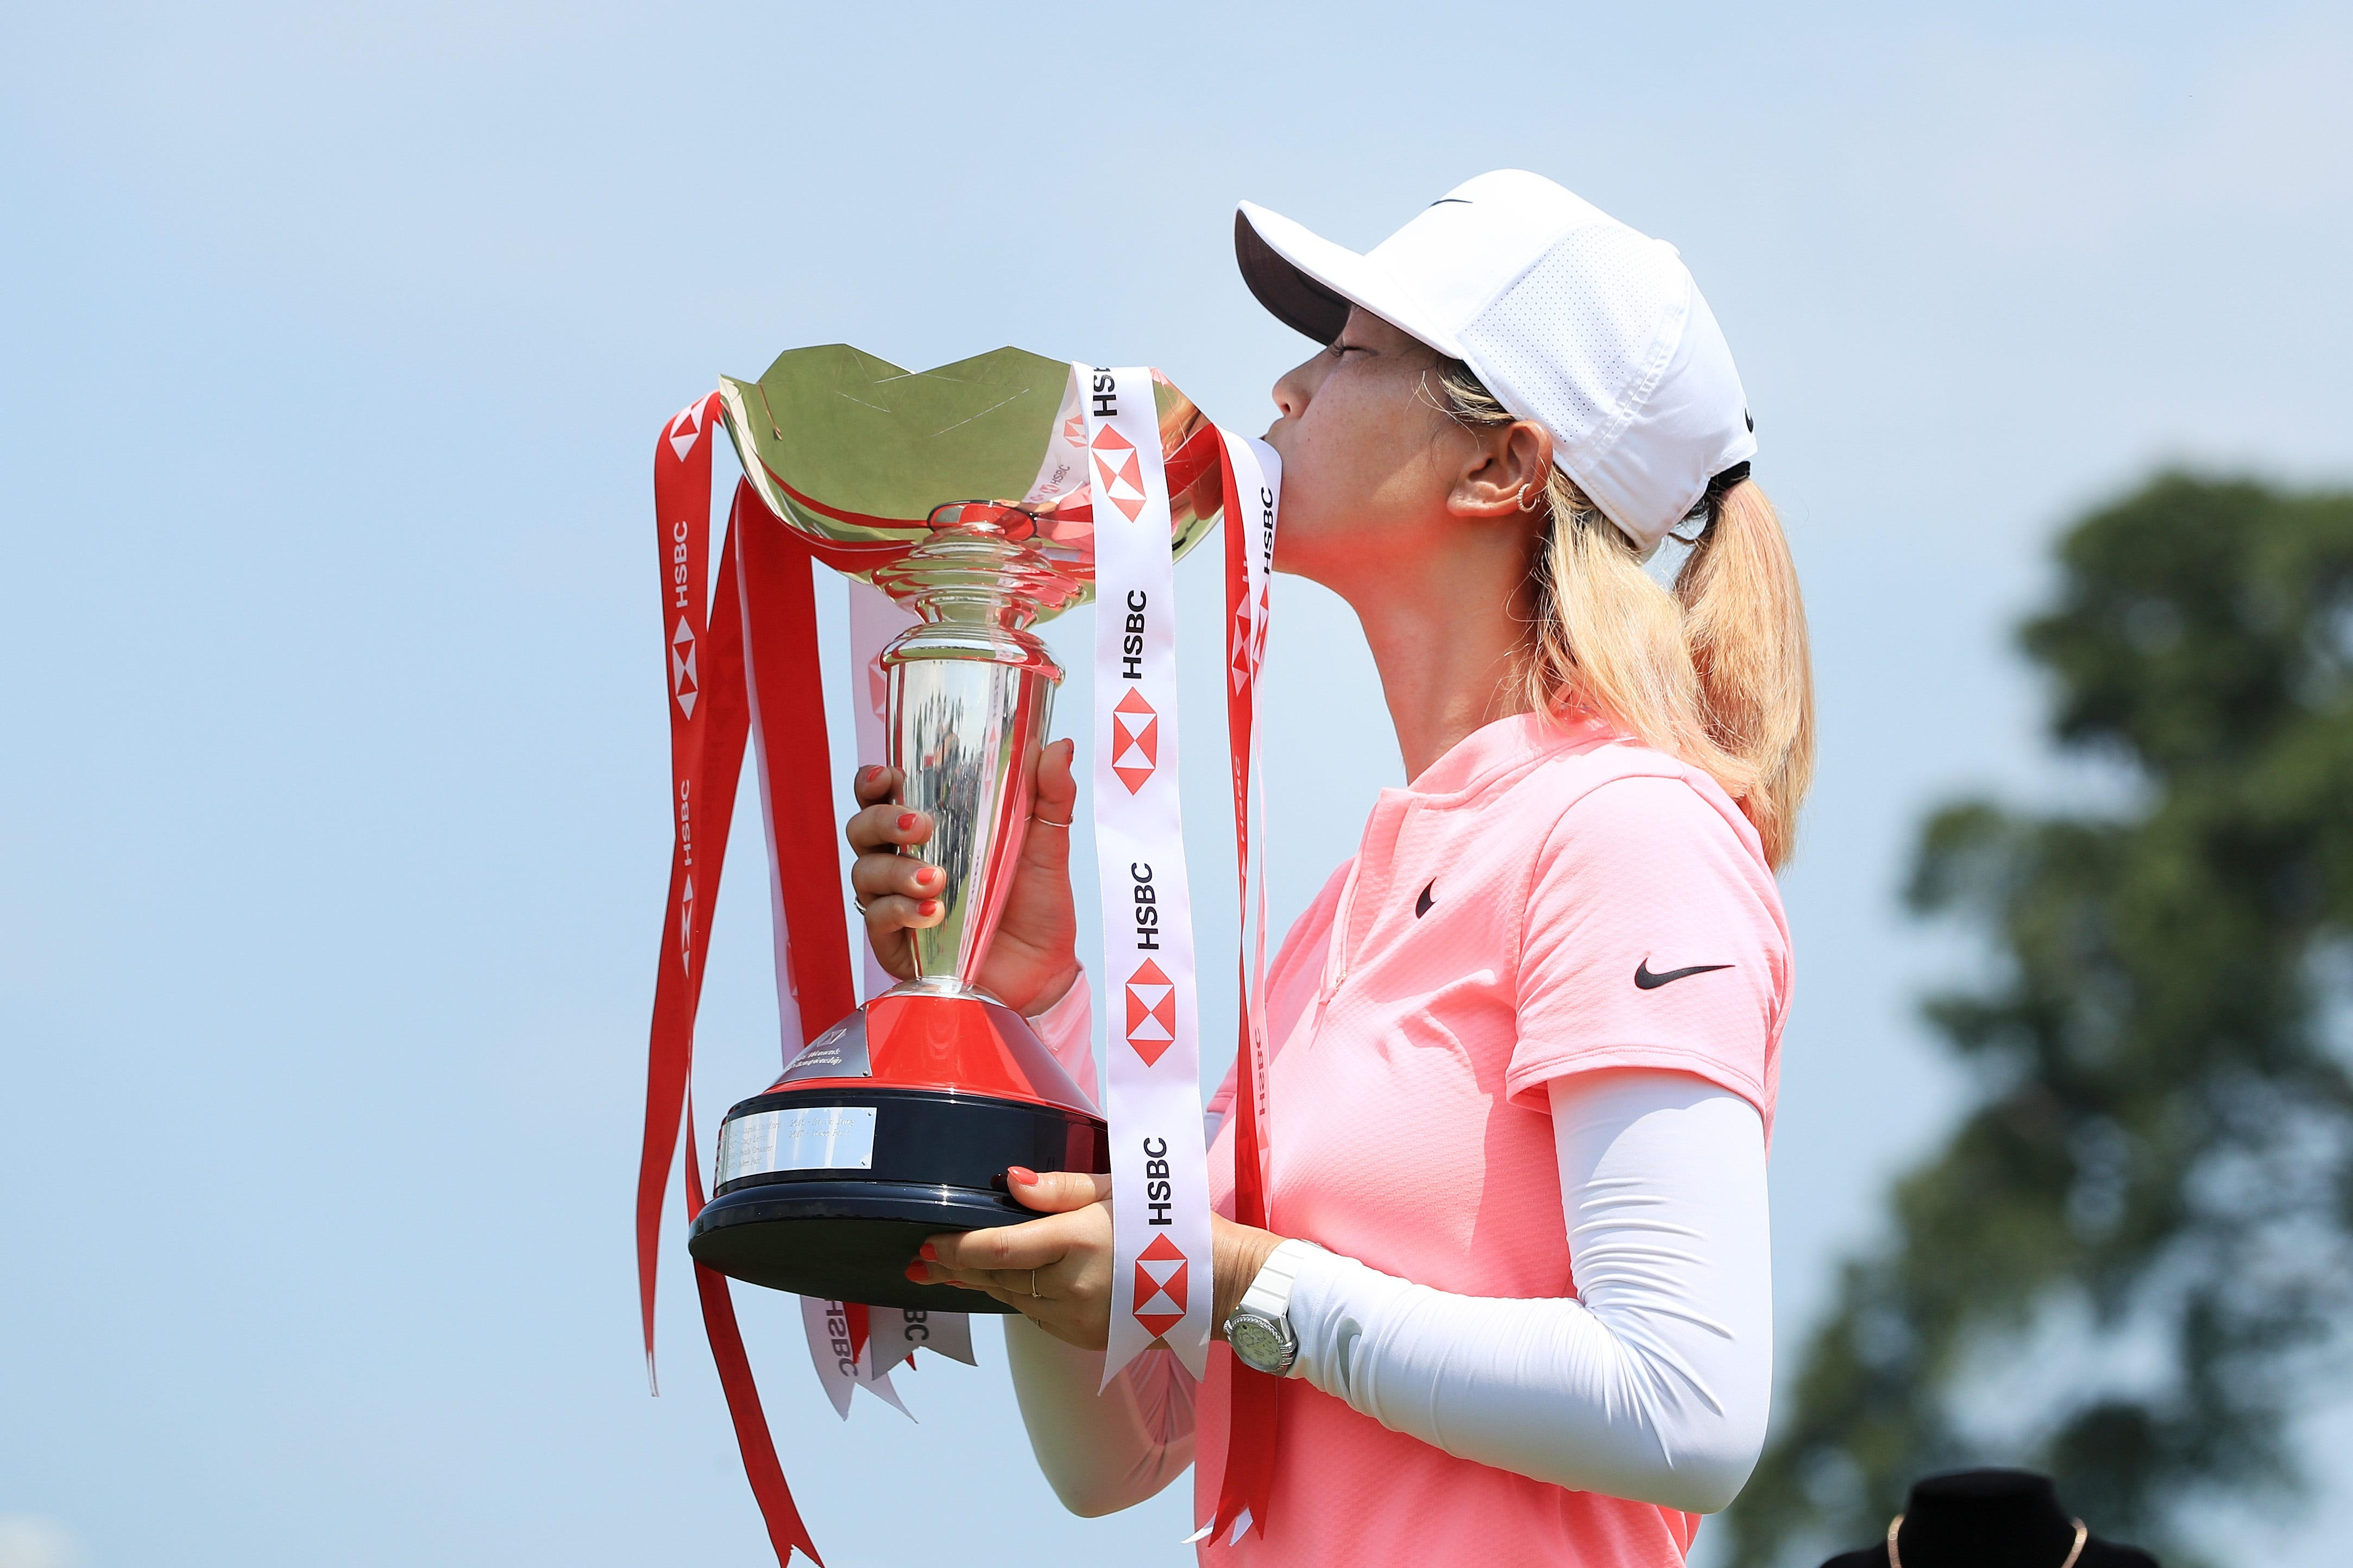 https://www usatoday com/picture-gallery/sports/golf/2014/05